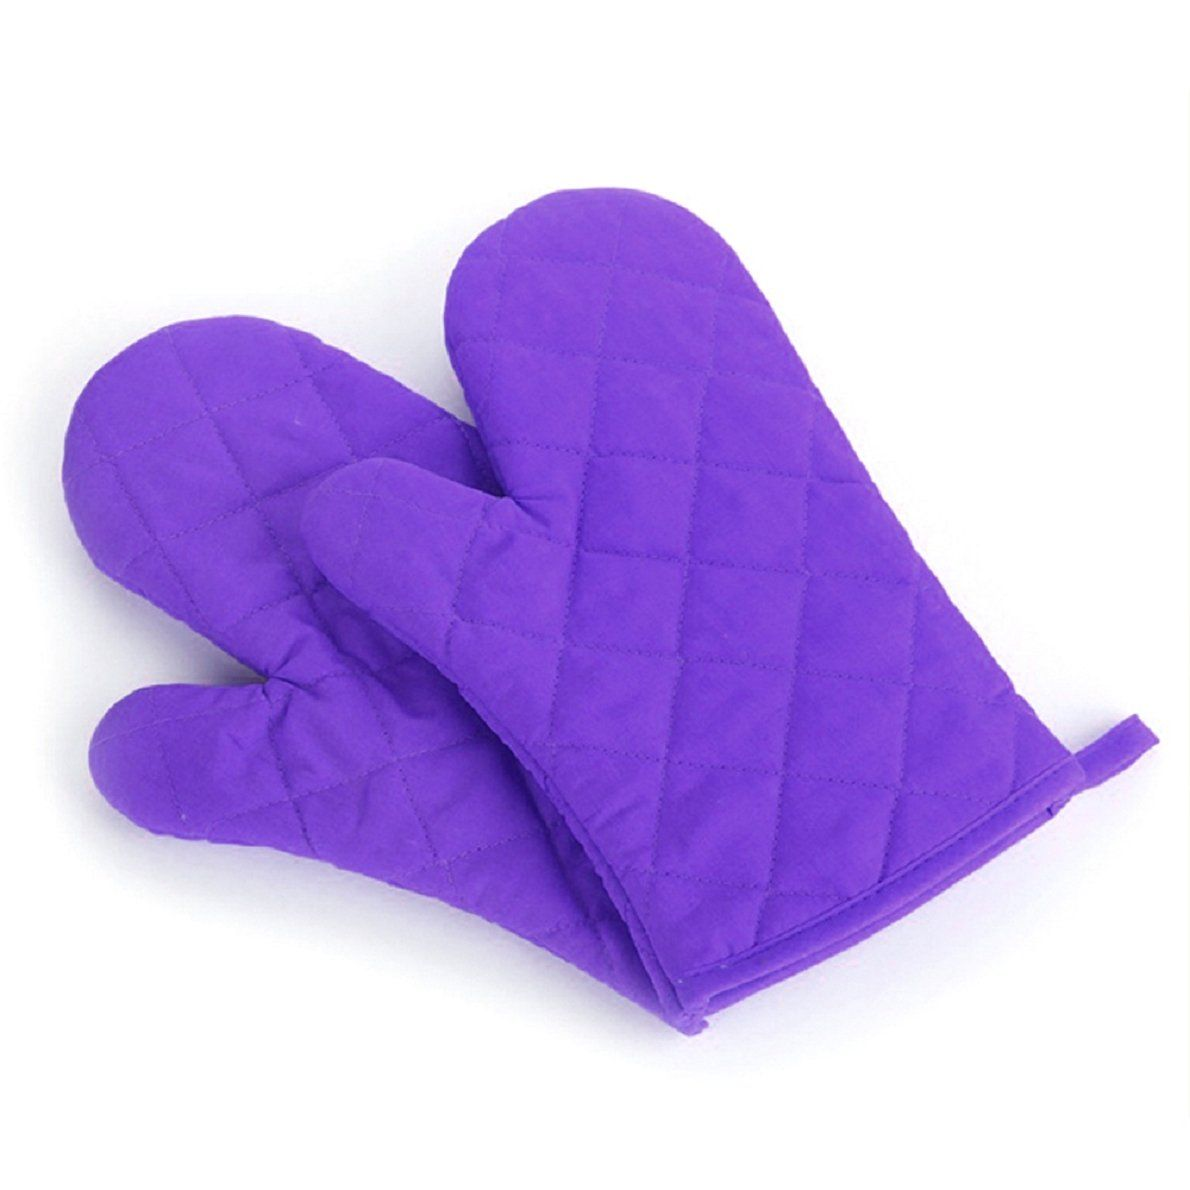 Aokdis (Tm) Hot Selling 2pcs Cotton Oven Gloves Heat Resistant Microwave Oven Kitchen Glove (purple)